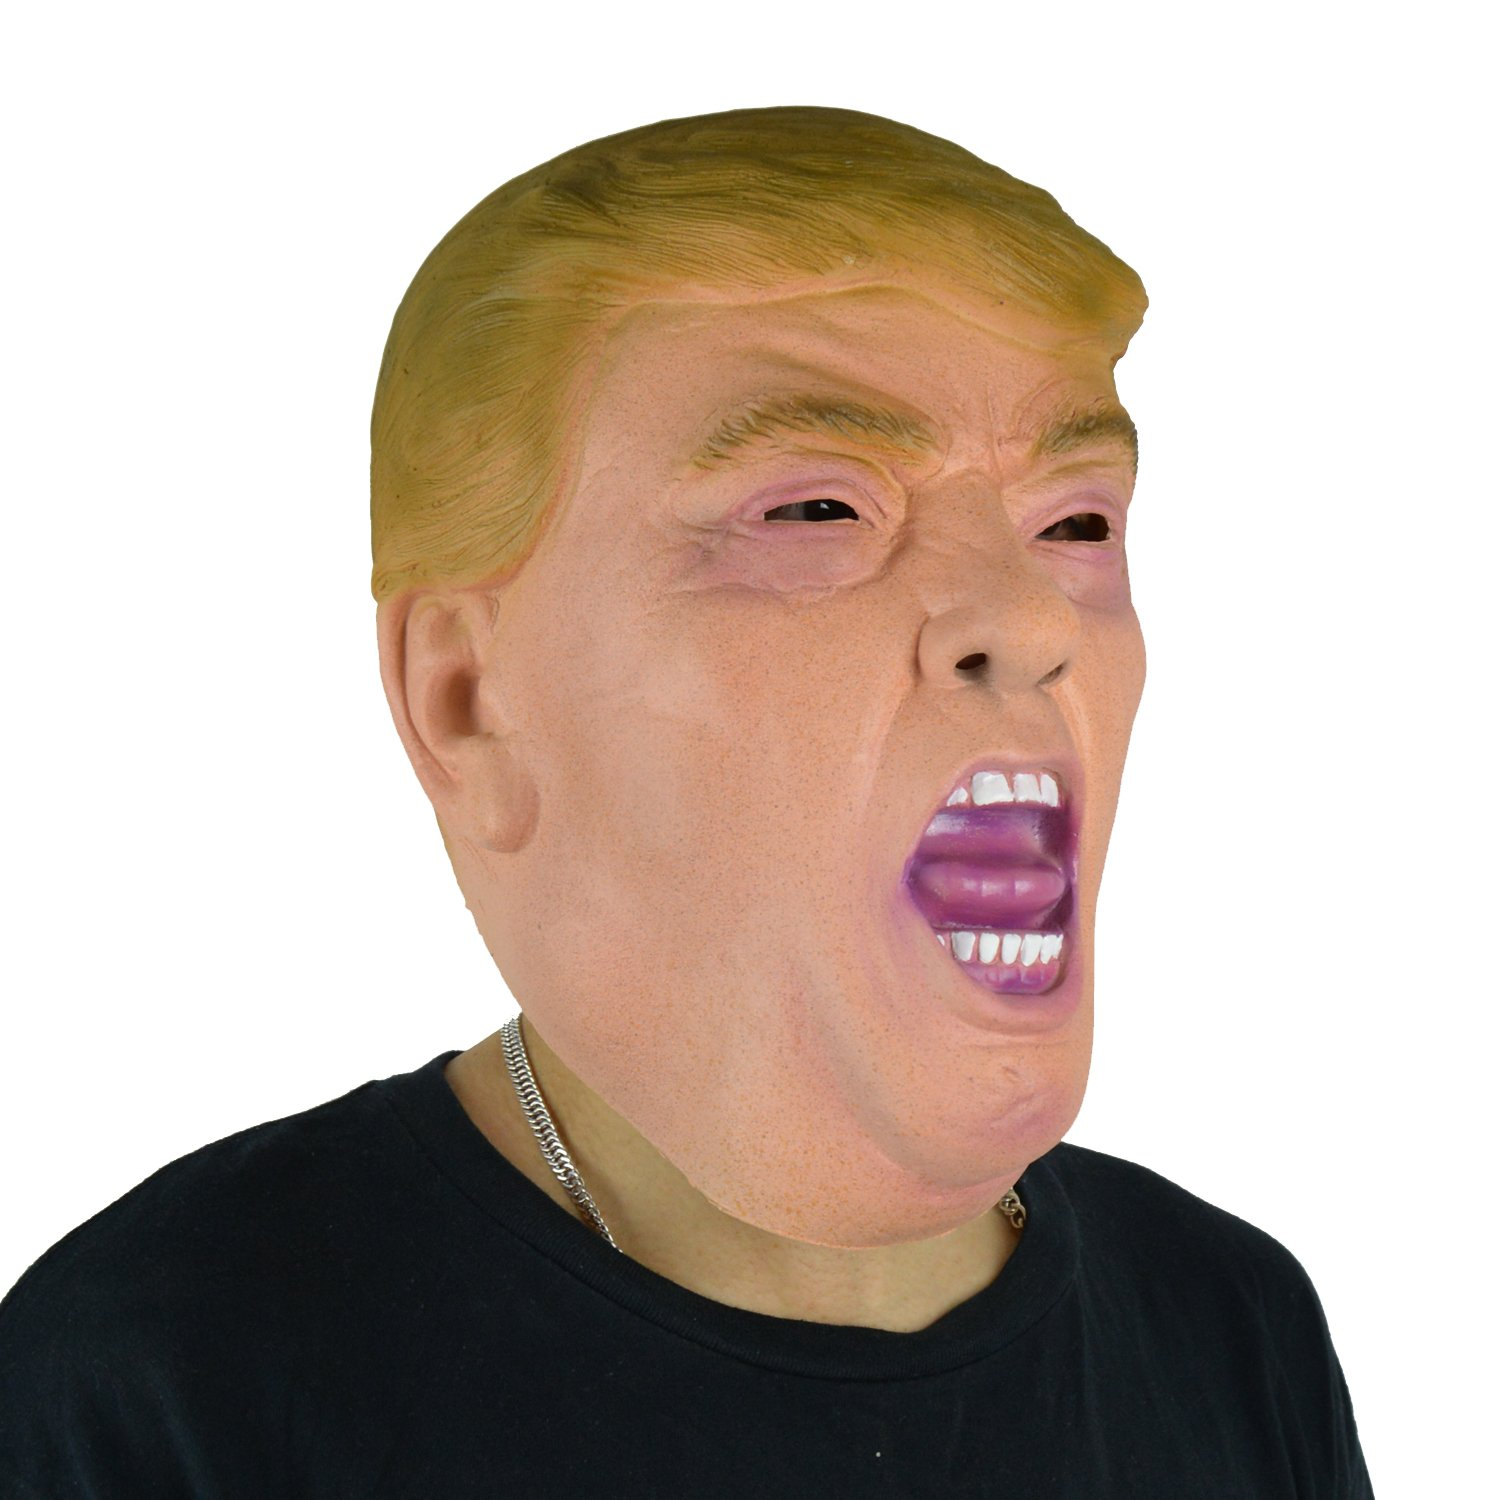 larpgears Donald Trump TV Presenter Billionaire Tycoon Cara Máscara de látex para fiesta: Amazon.es: Hogar